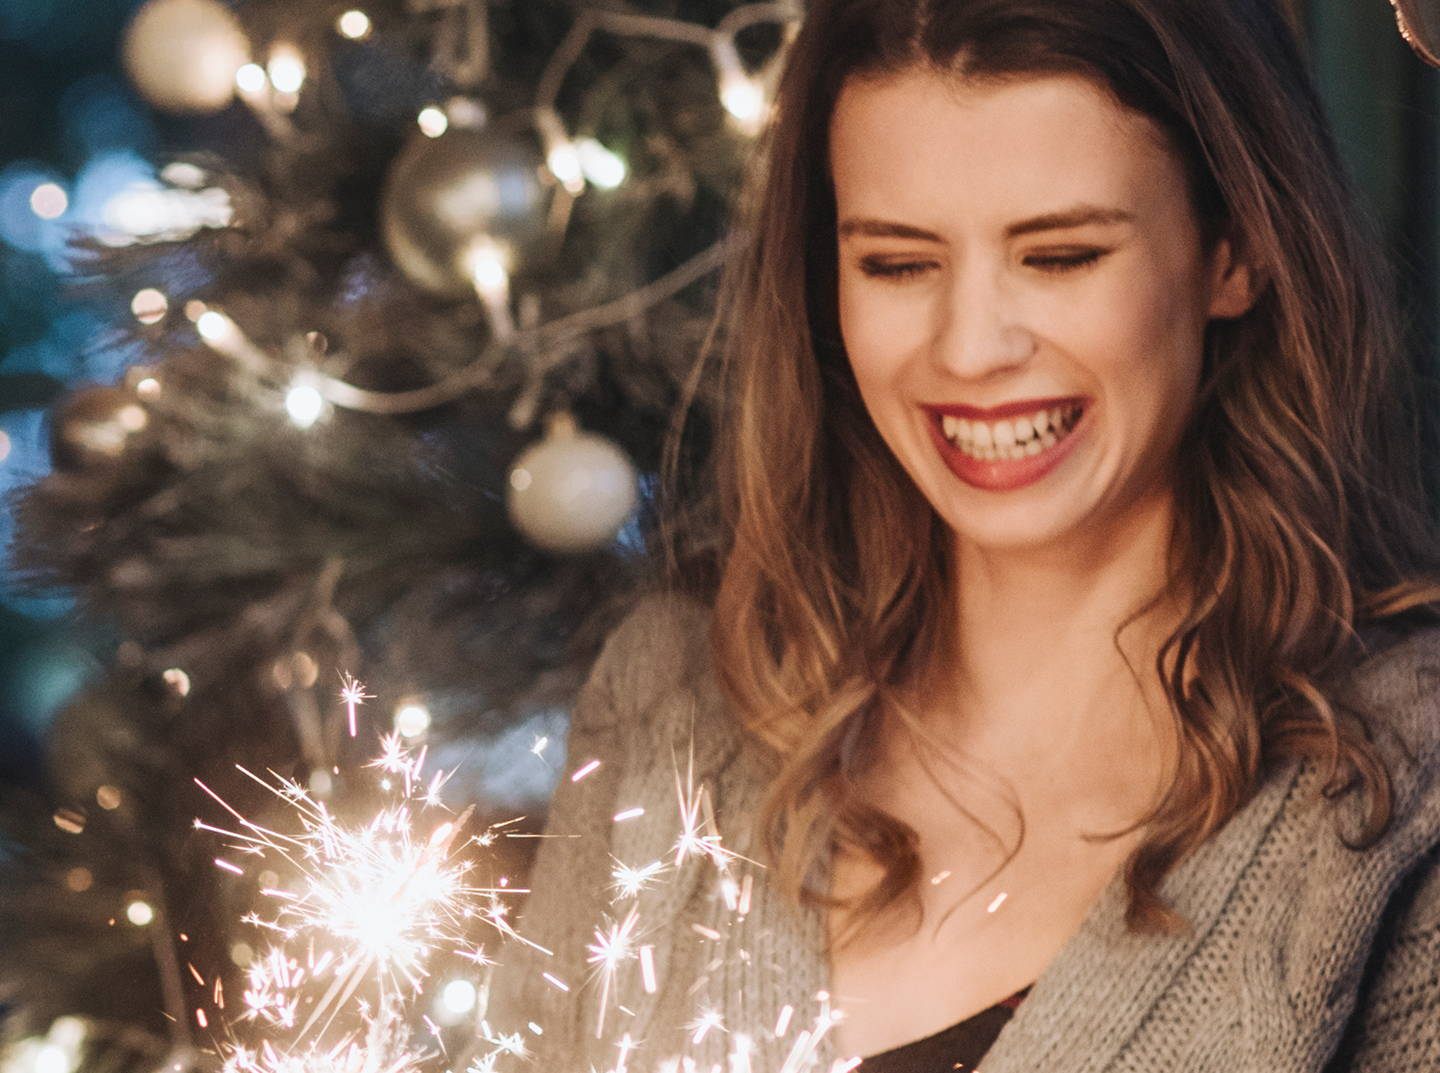 brunette women near holiday decorations and sparklers